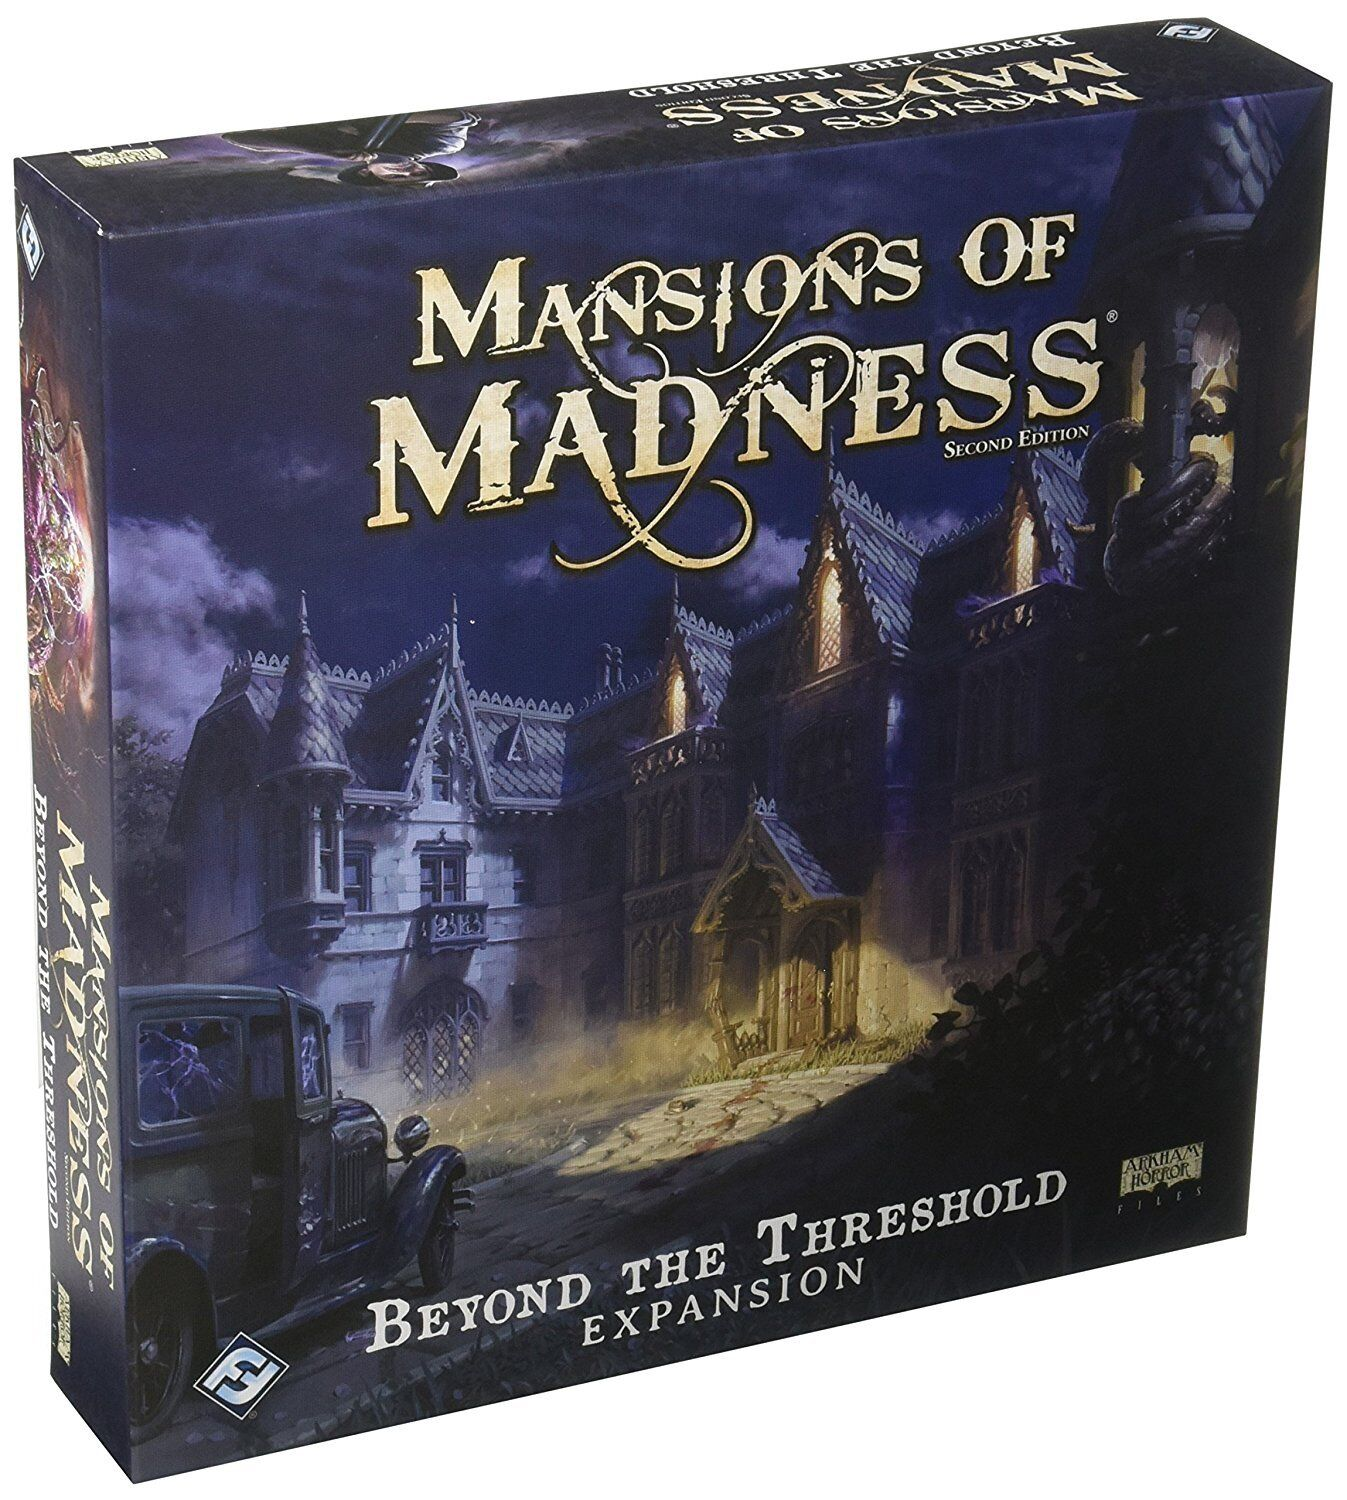 NEW Mansions of Madness 2nd Edition  Beyond the Threshold Expansion